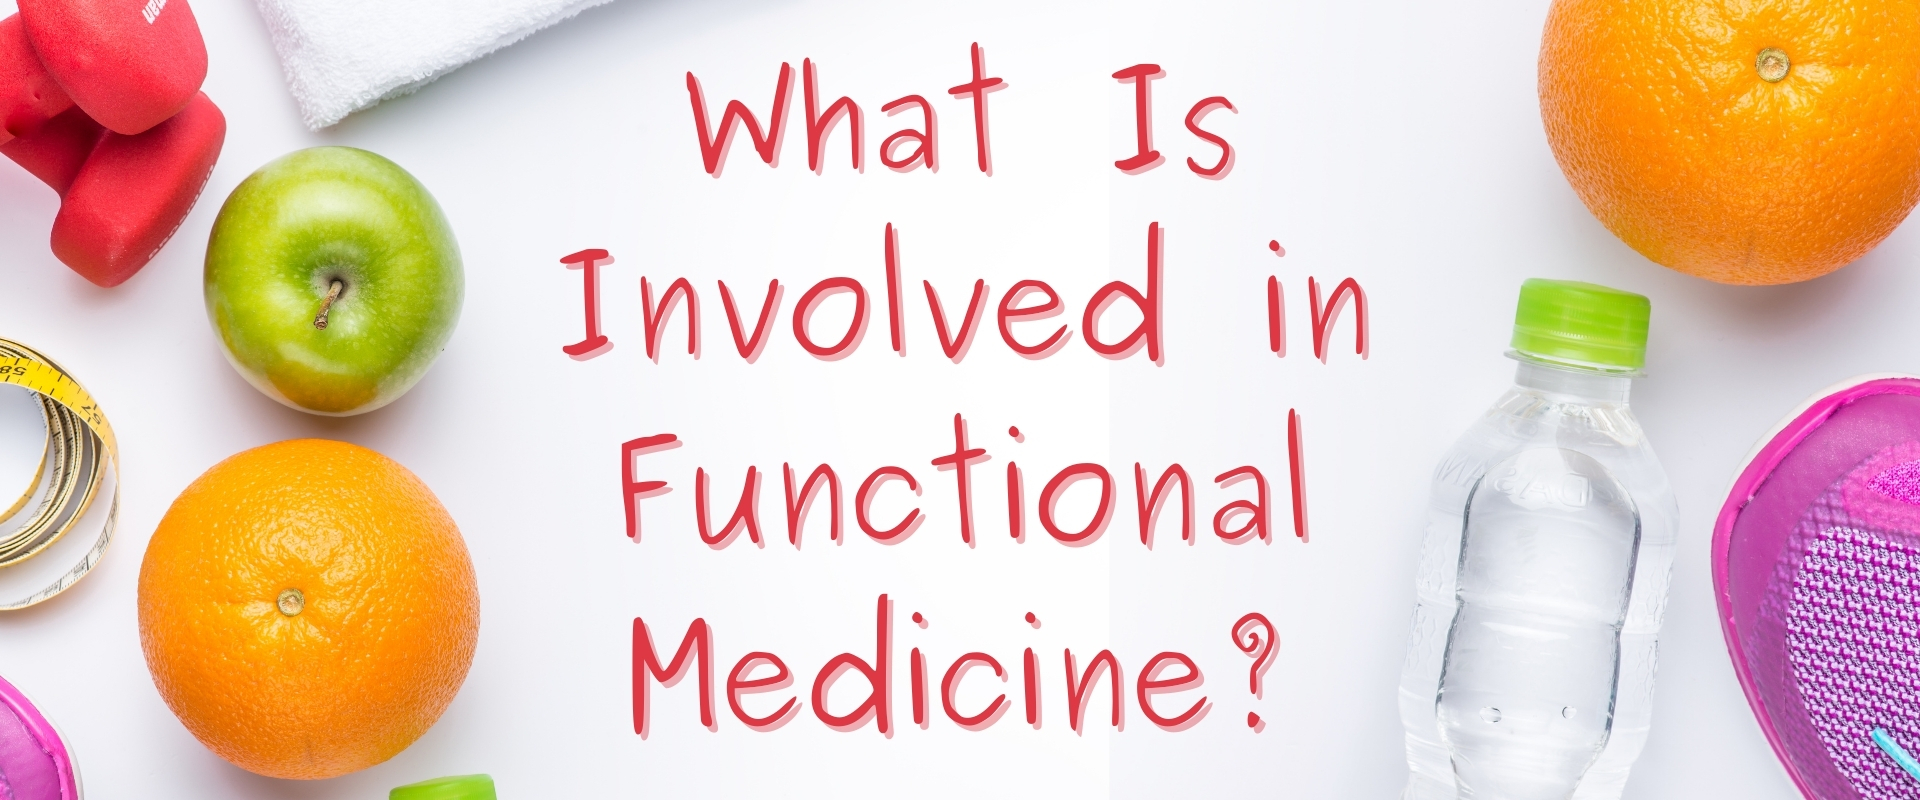 What Is Involved in Functional Medicine